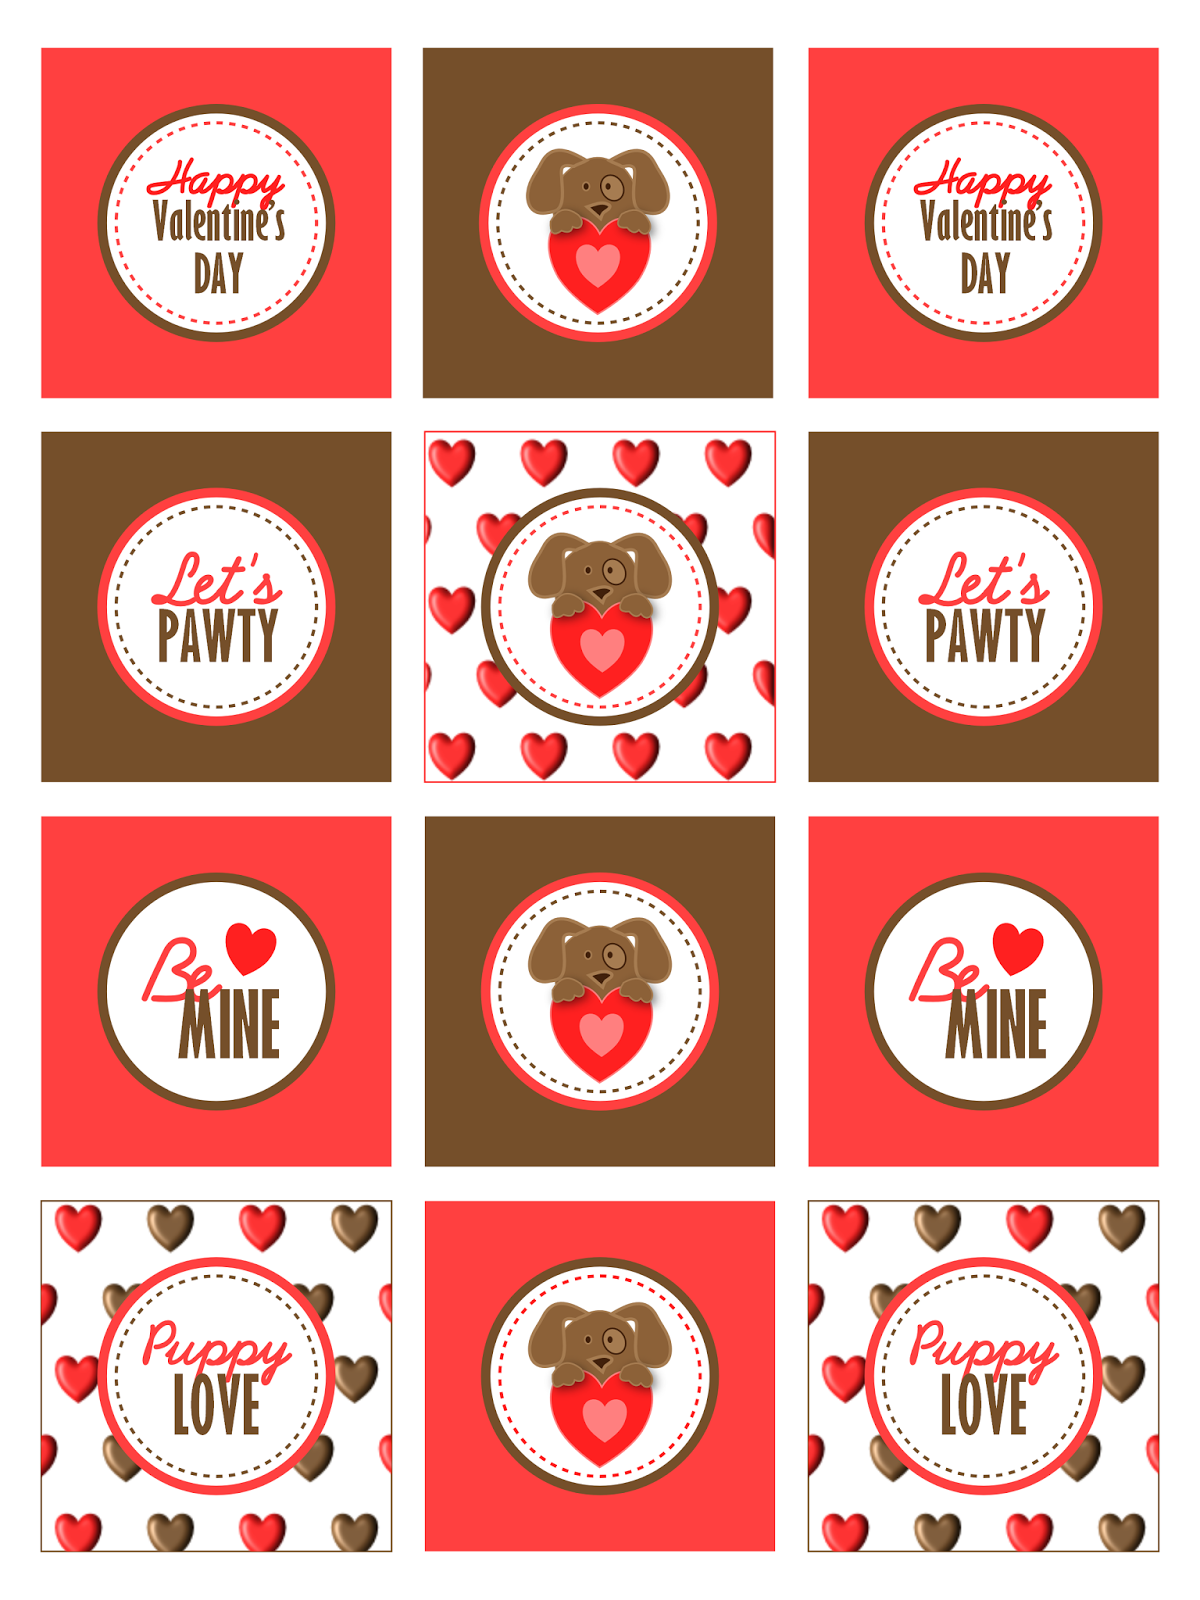 Free Printable Puppy Love Valentine S Day Party Kit